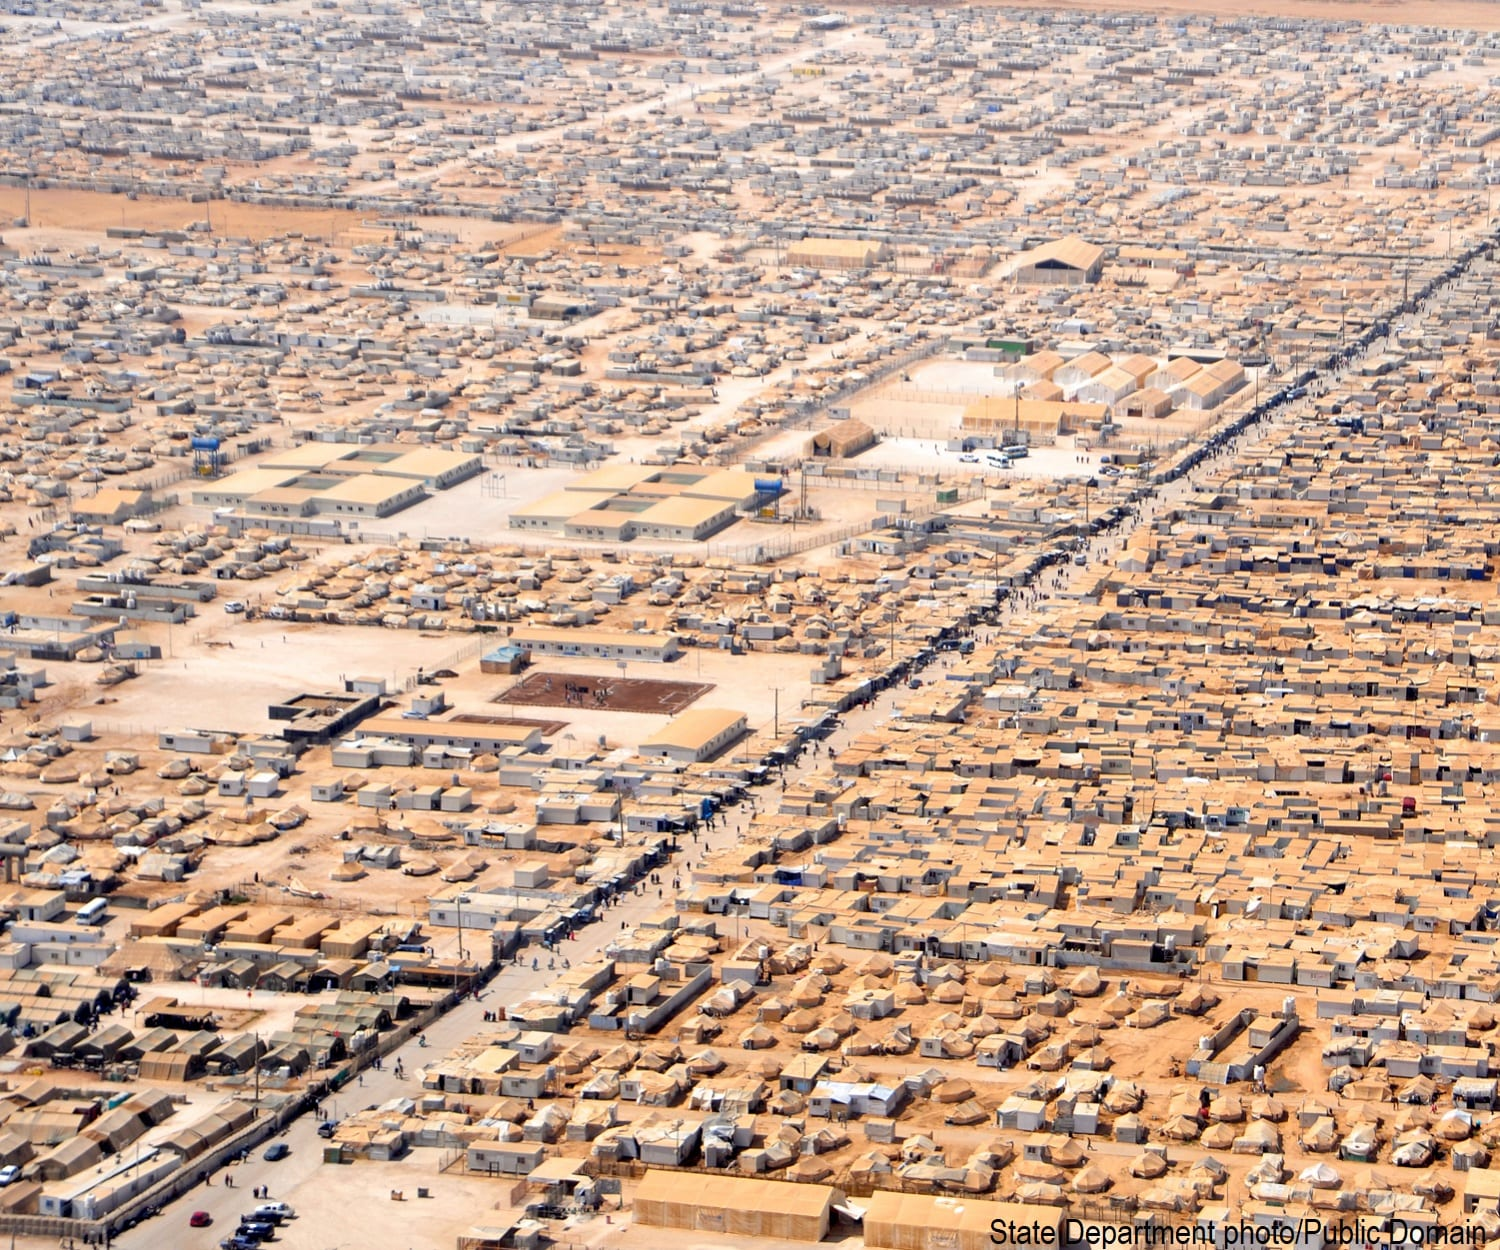 Aerial view of the Zaatari refugee camp in Jordan. The world's largest camp of Syrian refugees.